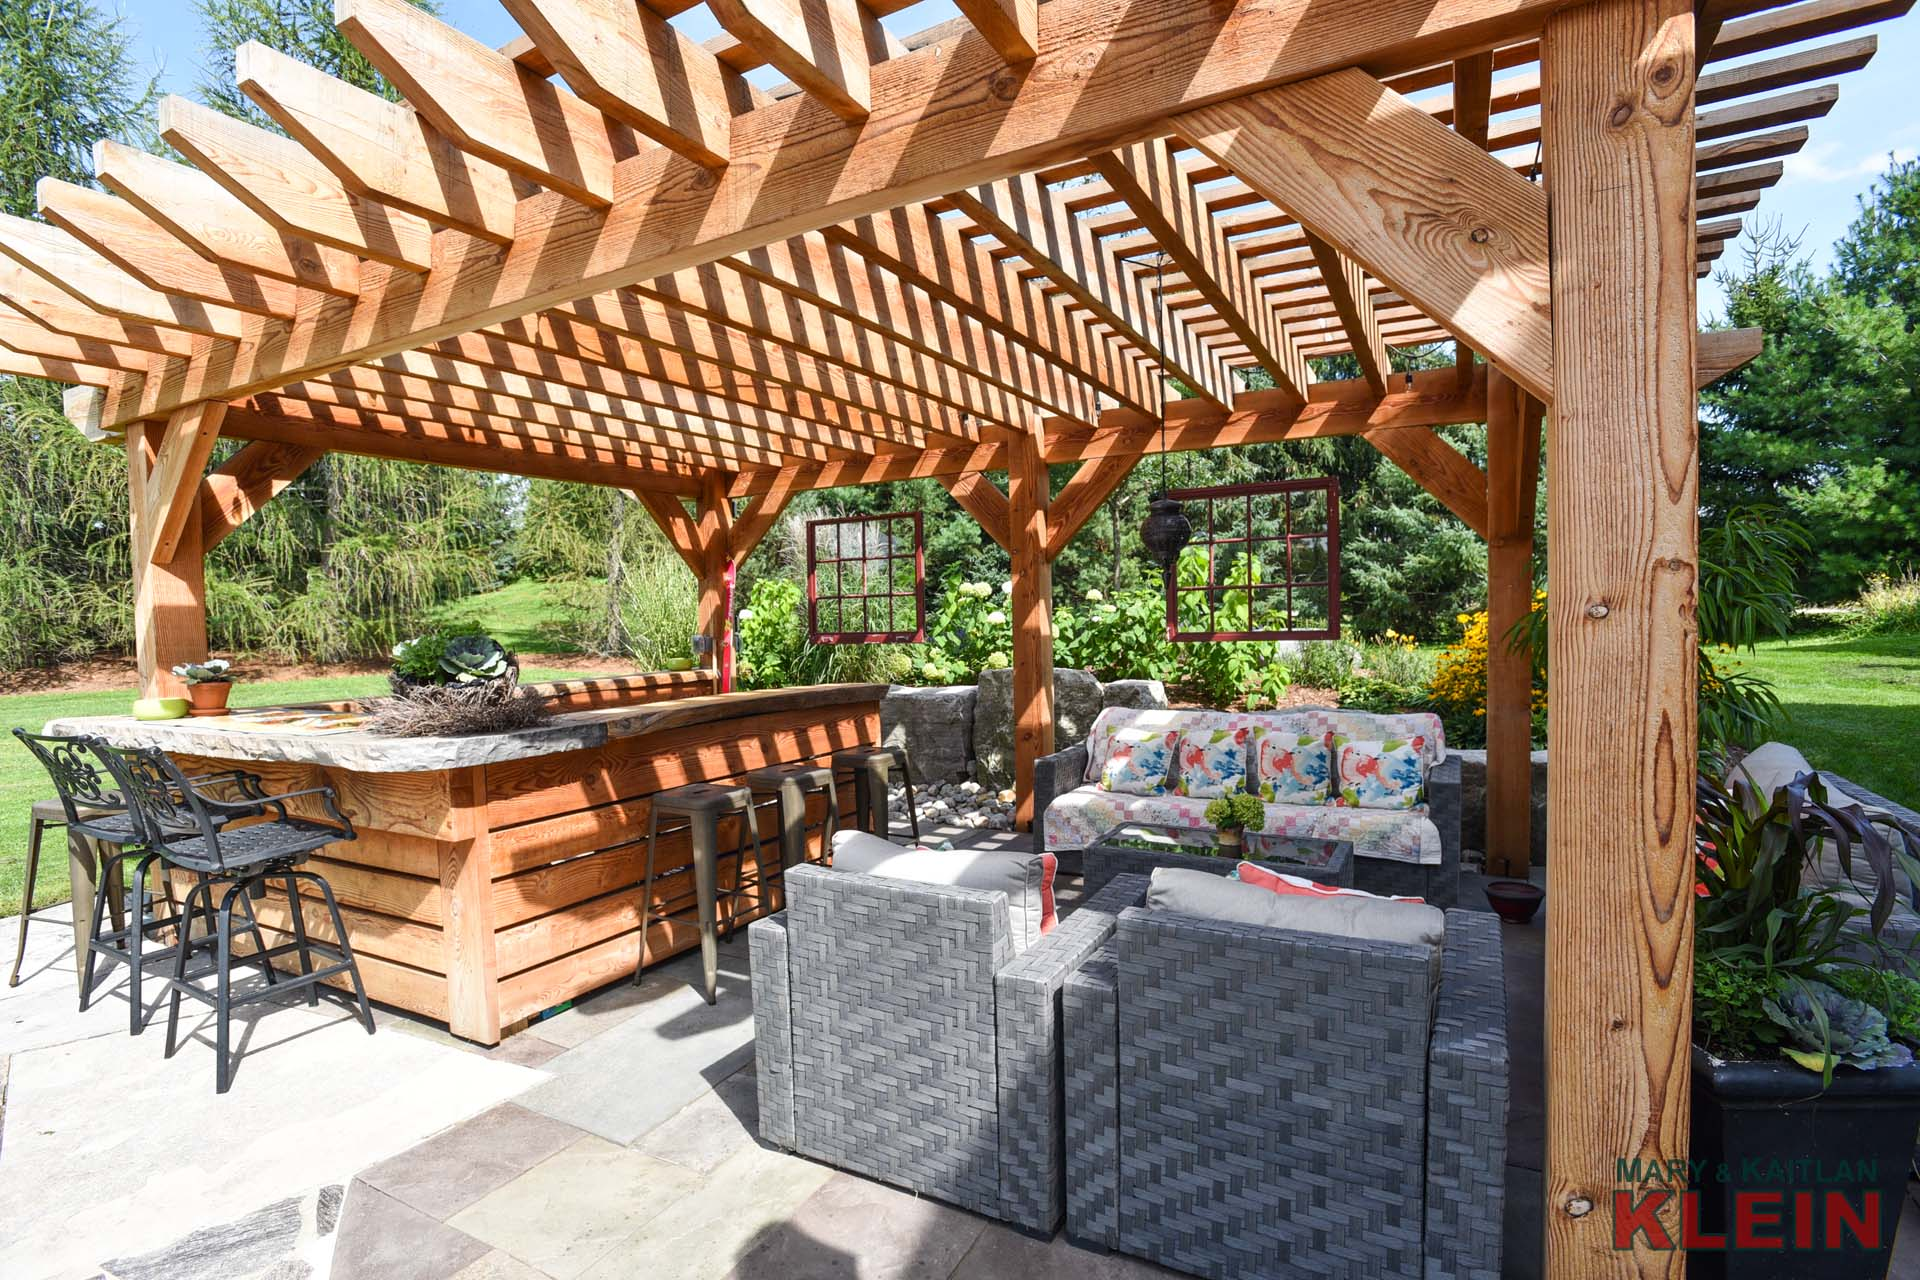 Pergola, Bar, Stone Patio, Pizza Oven